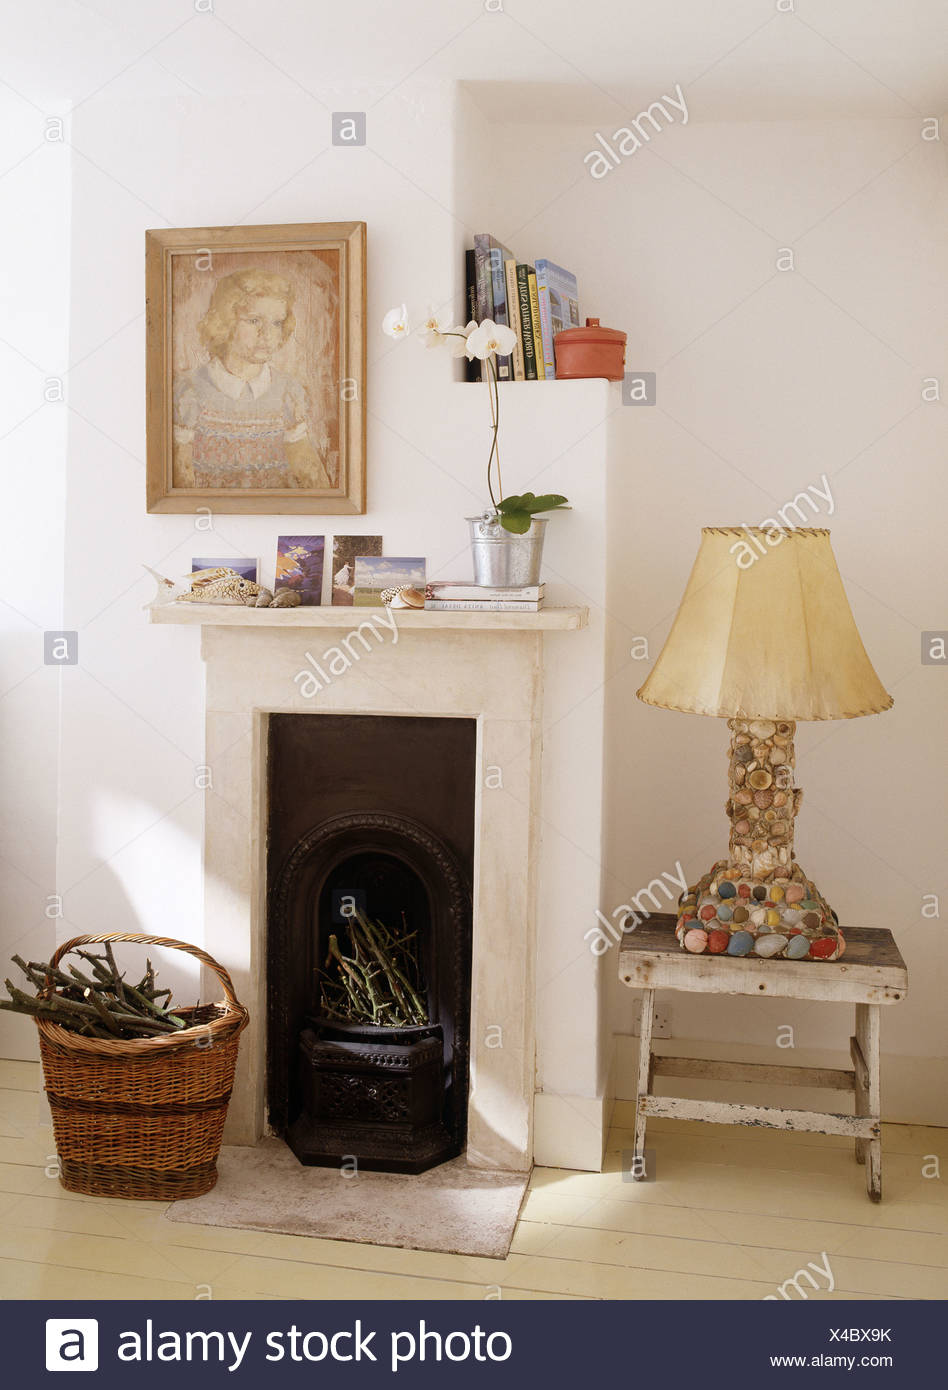 Pebble Encrusted Lamp On Painted Stool Beside Small Fireplace In White  Bedroom With Basket Of Firewood